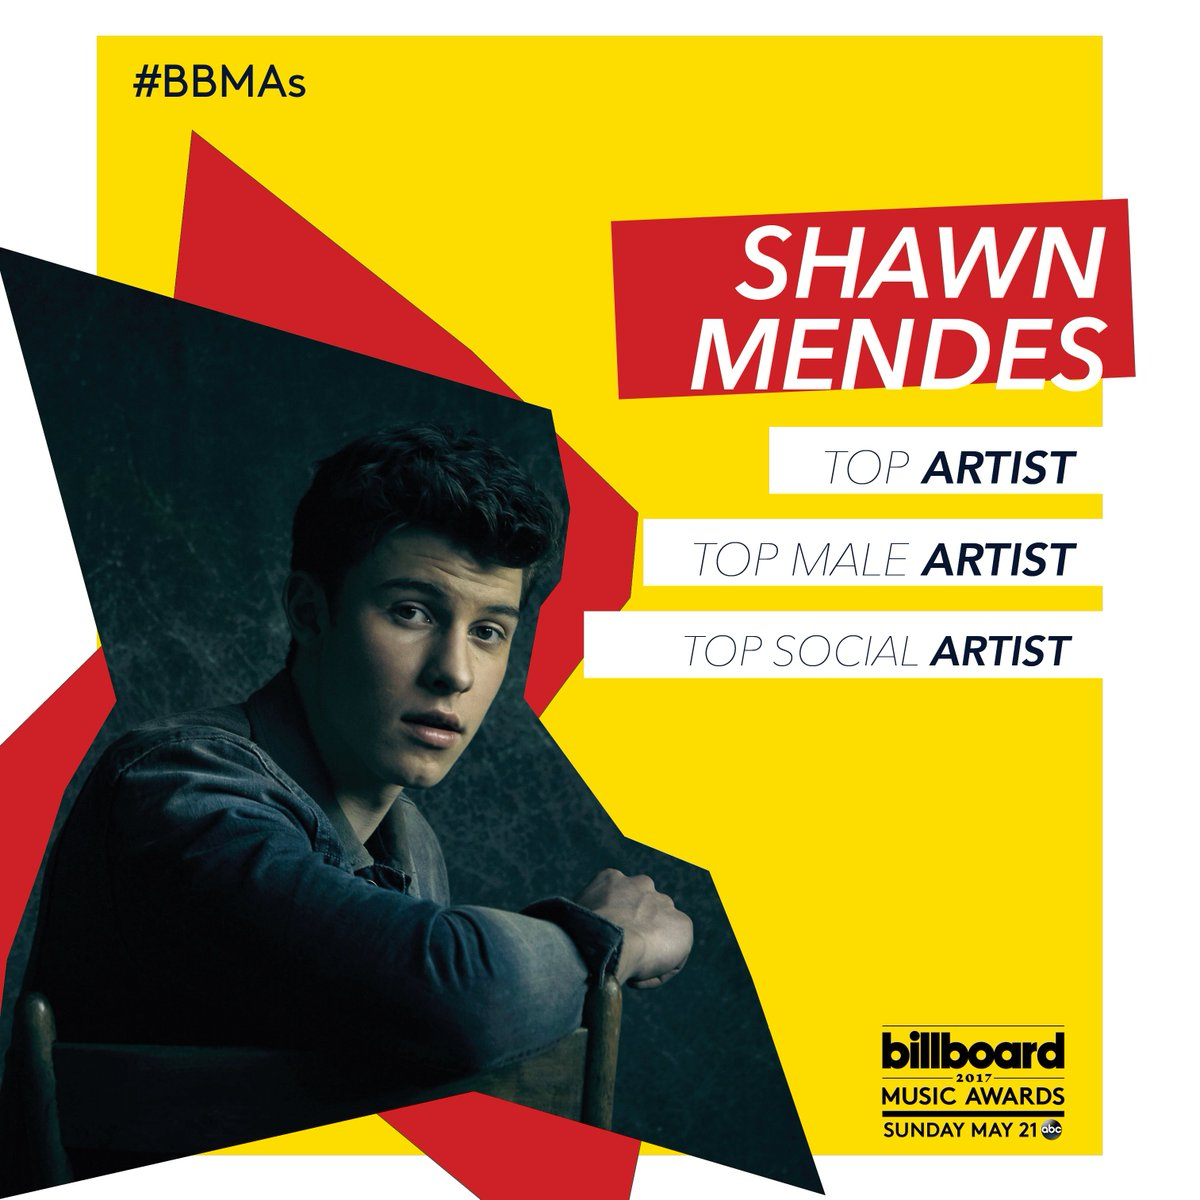 Congratulations to @ShawnMendes on THREE nominations at the #BBMAs! 🔥